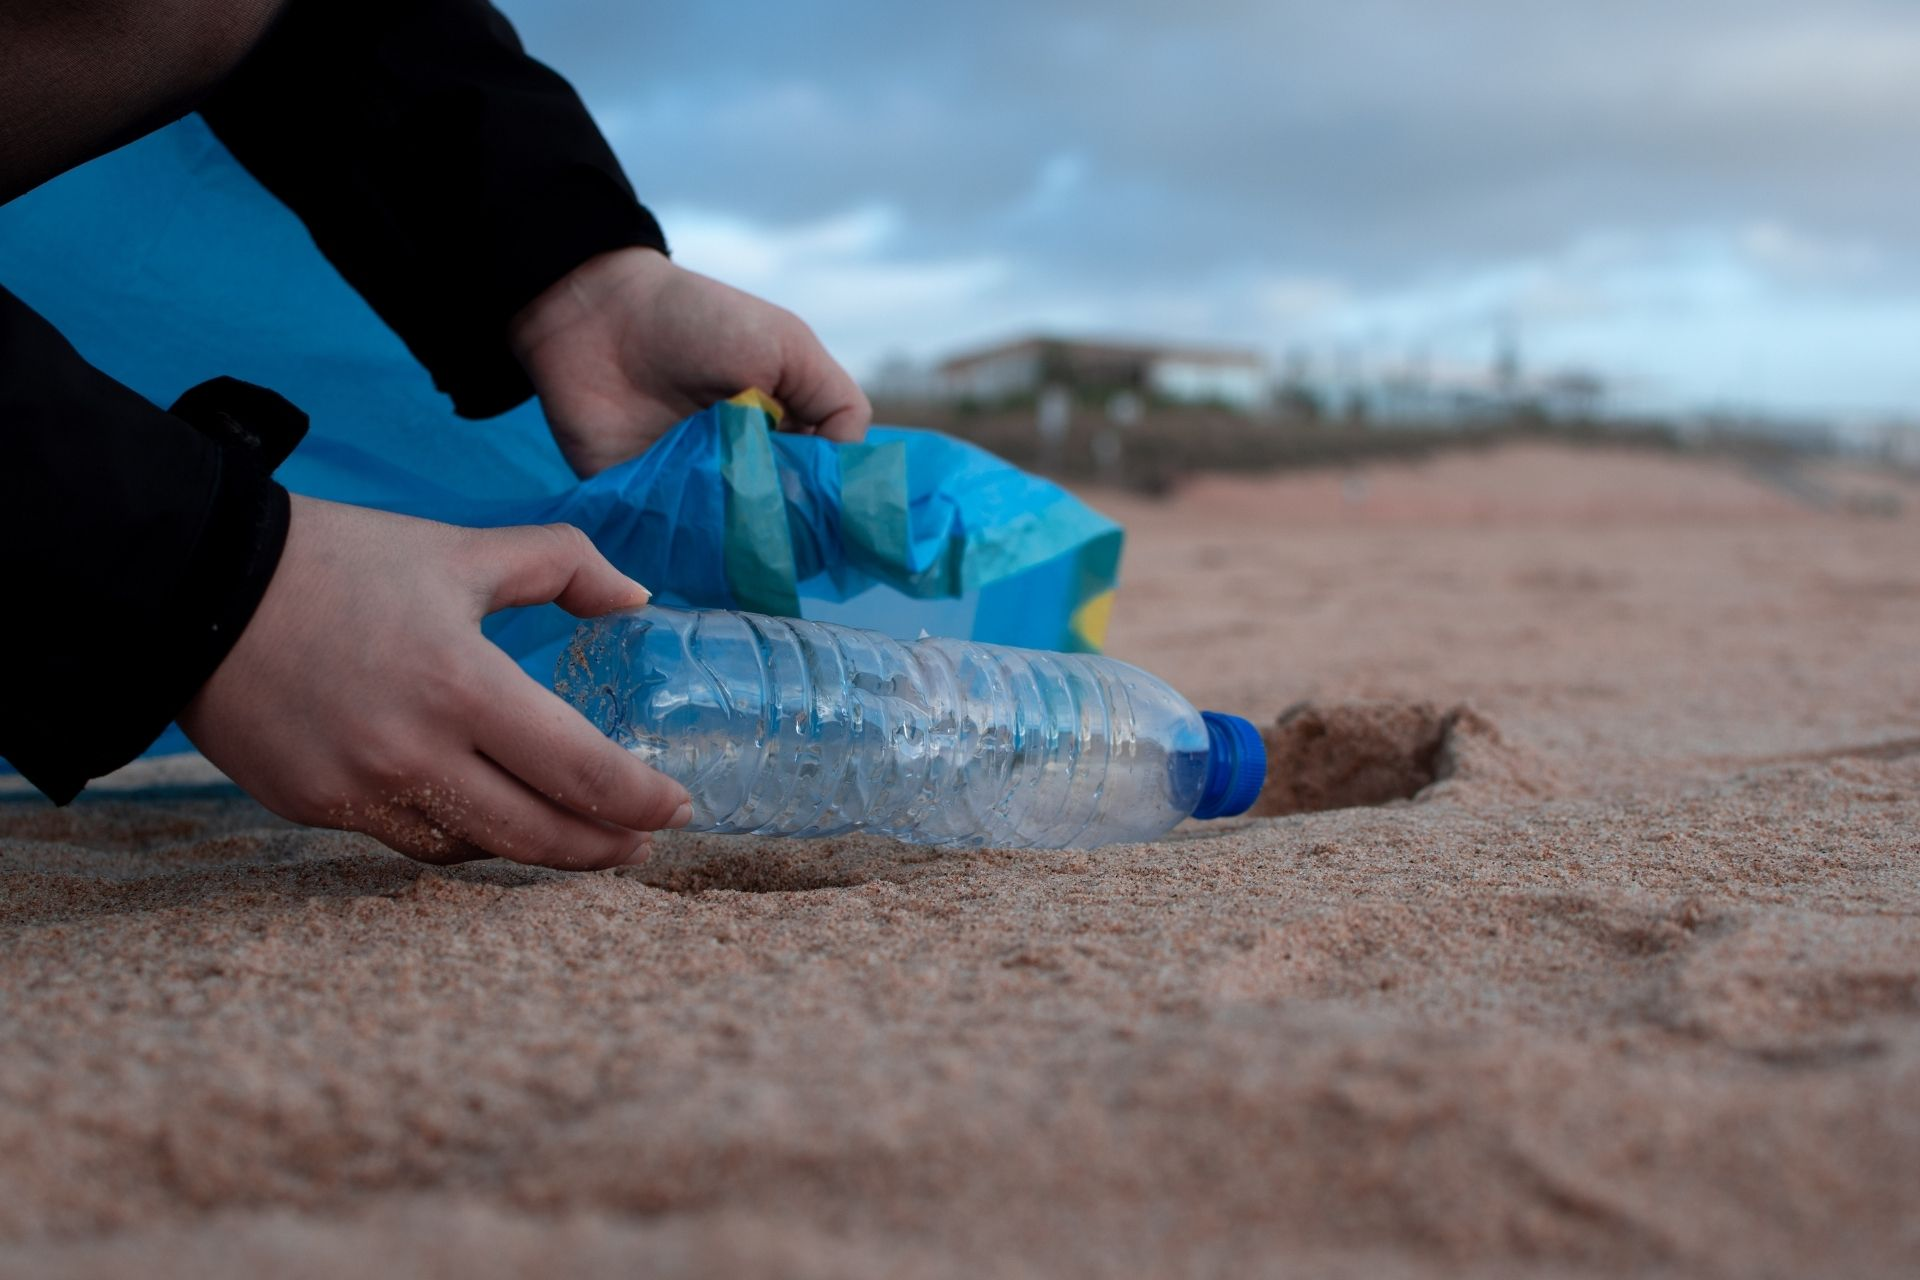 Camerooned? Turn your plastic bottle into a boat!